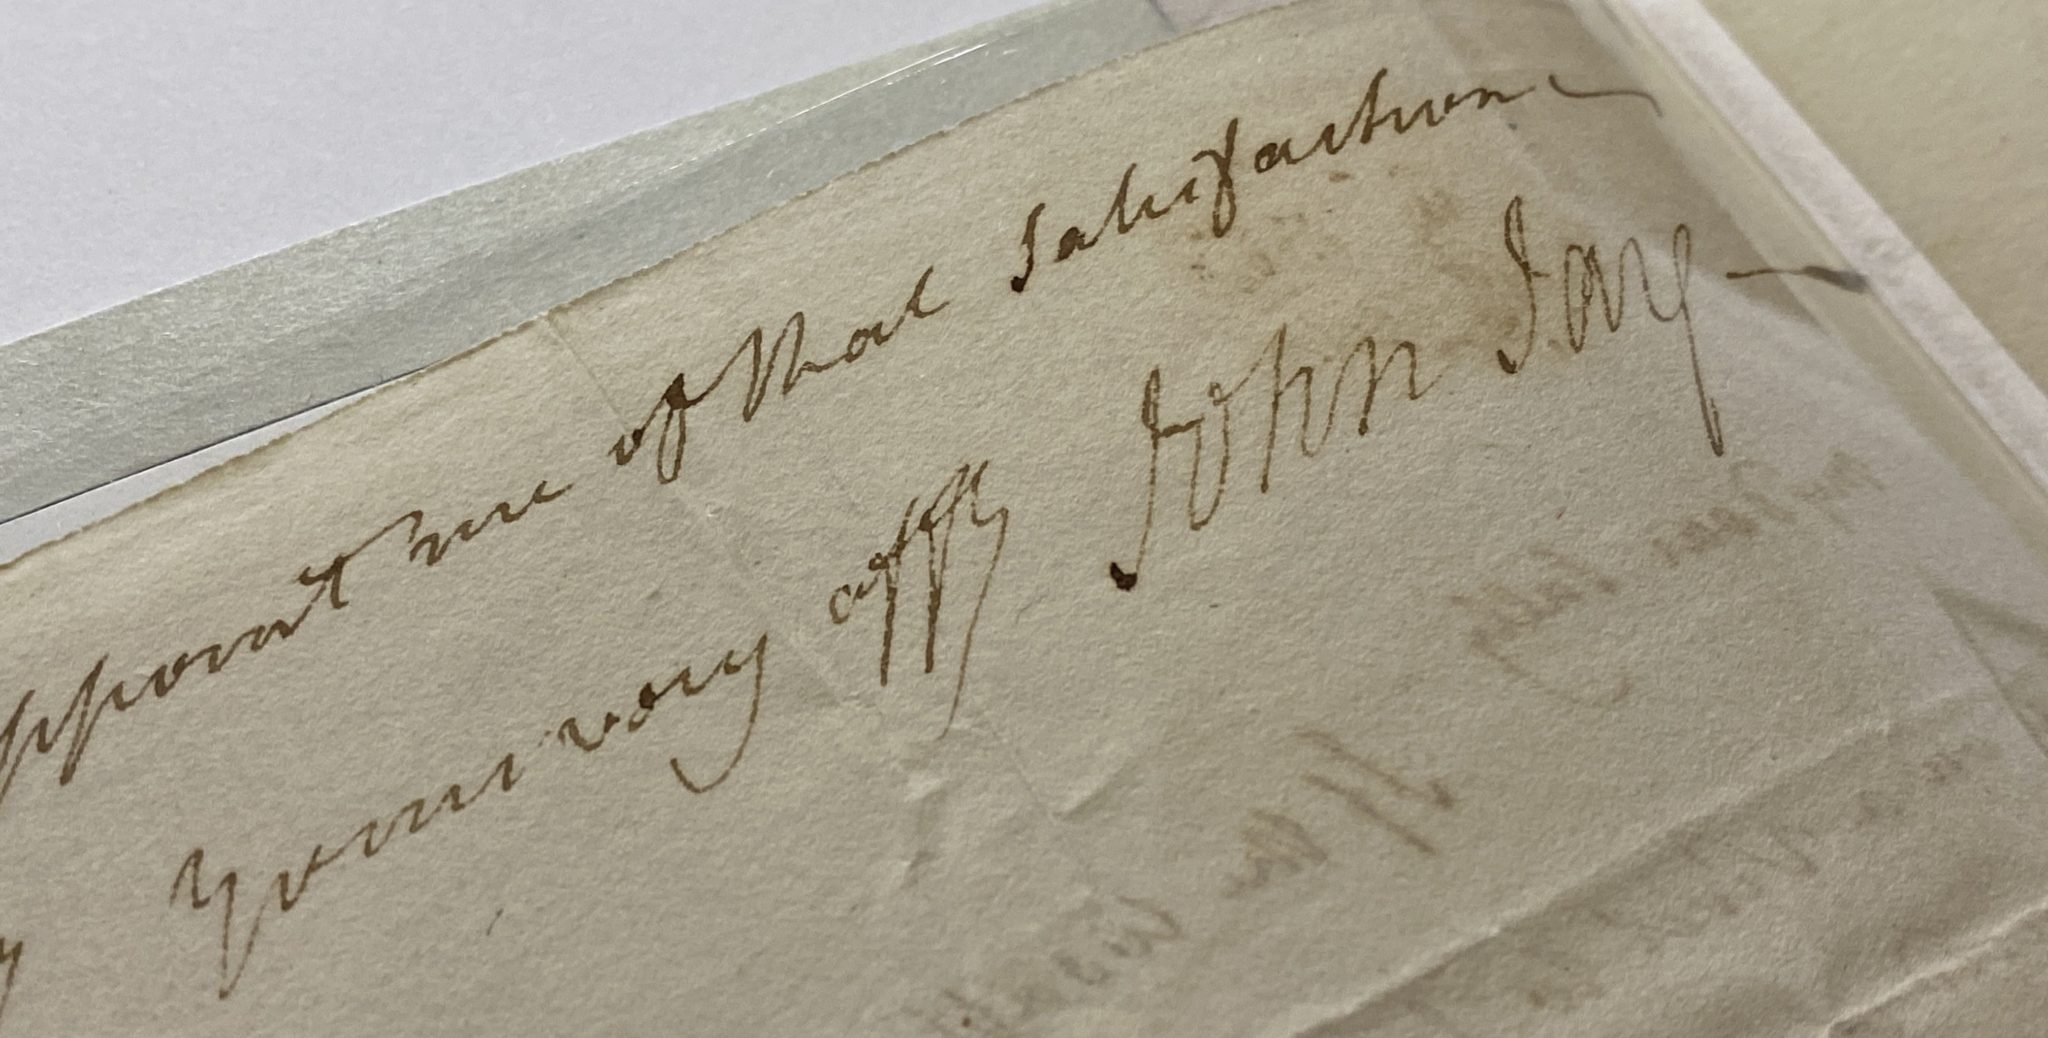 A close up of a signature by justice John Jay. The paper looks old but is preserved in a plastic.